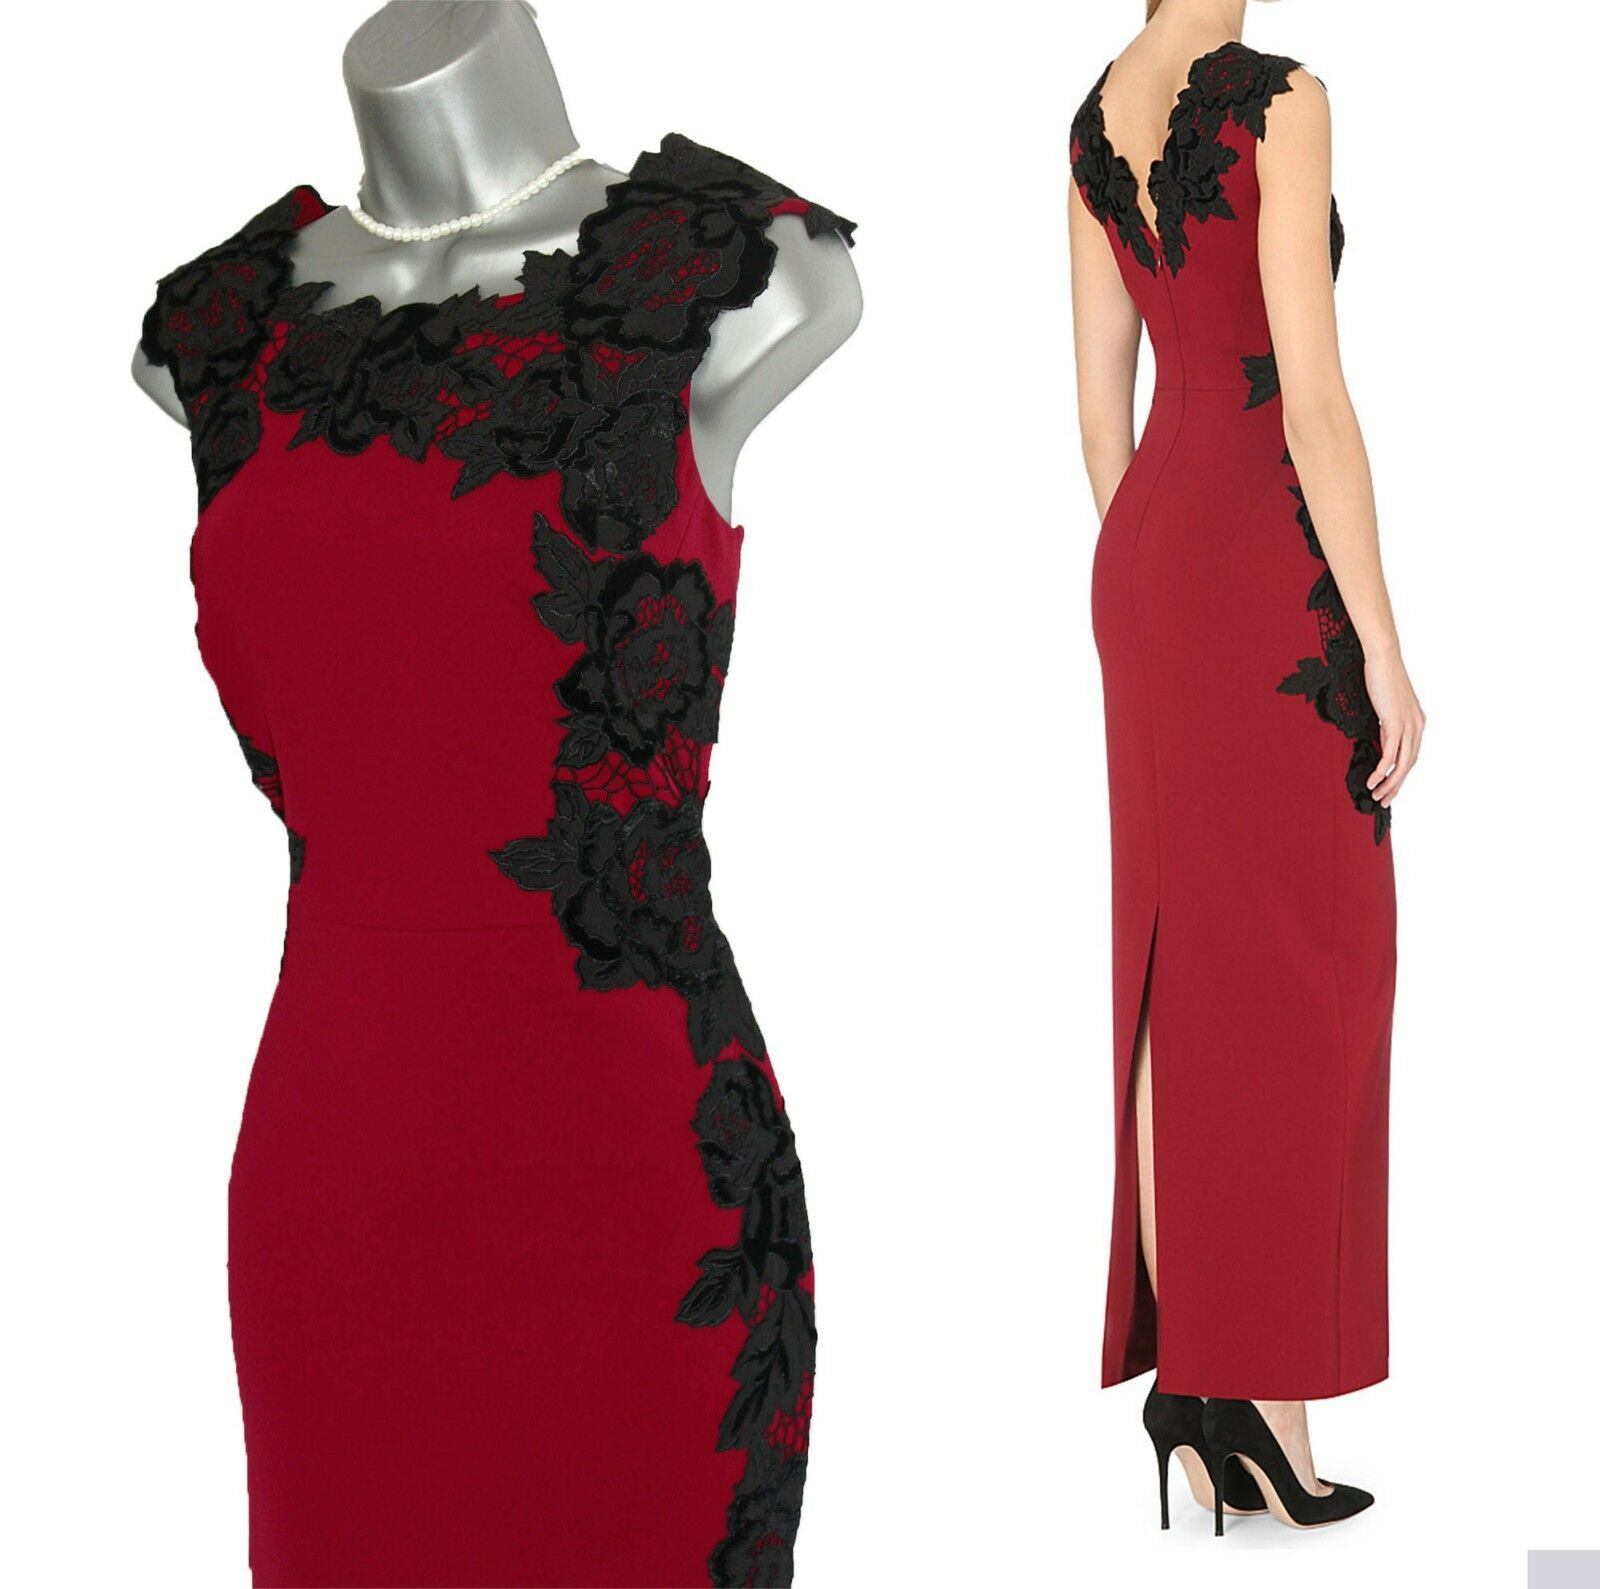 KAREN MILLEN Stunning Velvet Floral Applique Maxi Party Dress UK10 BNWT